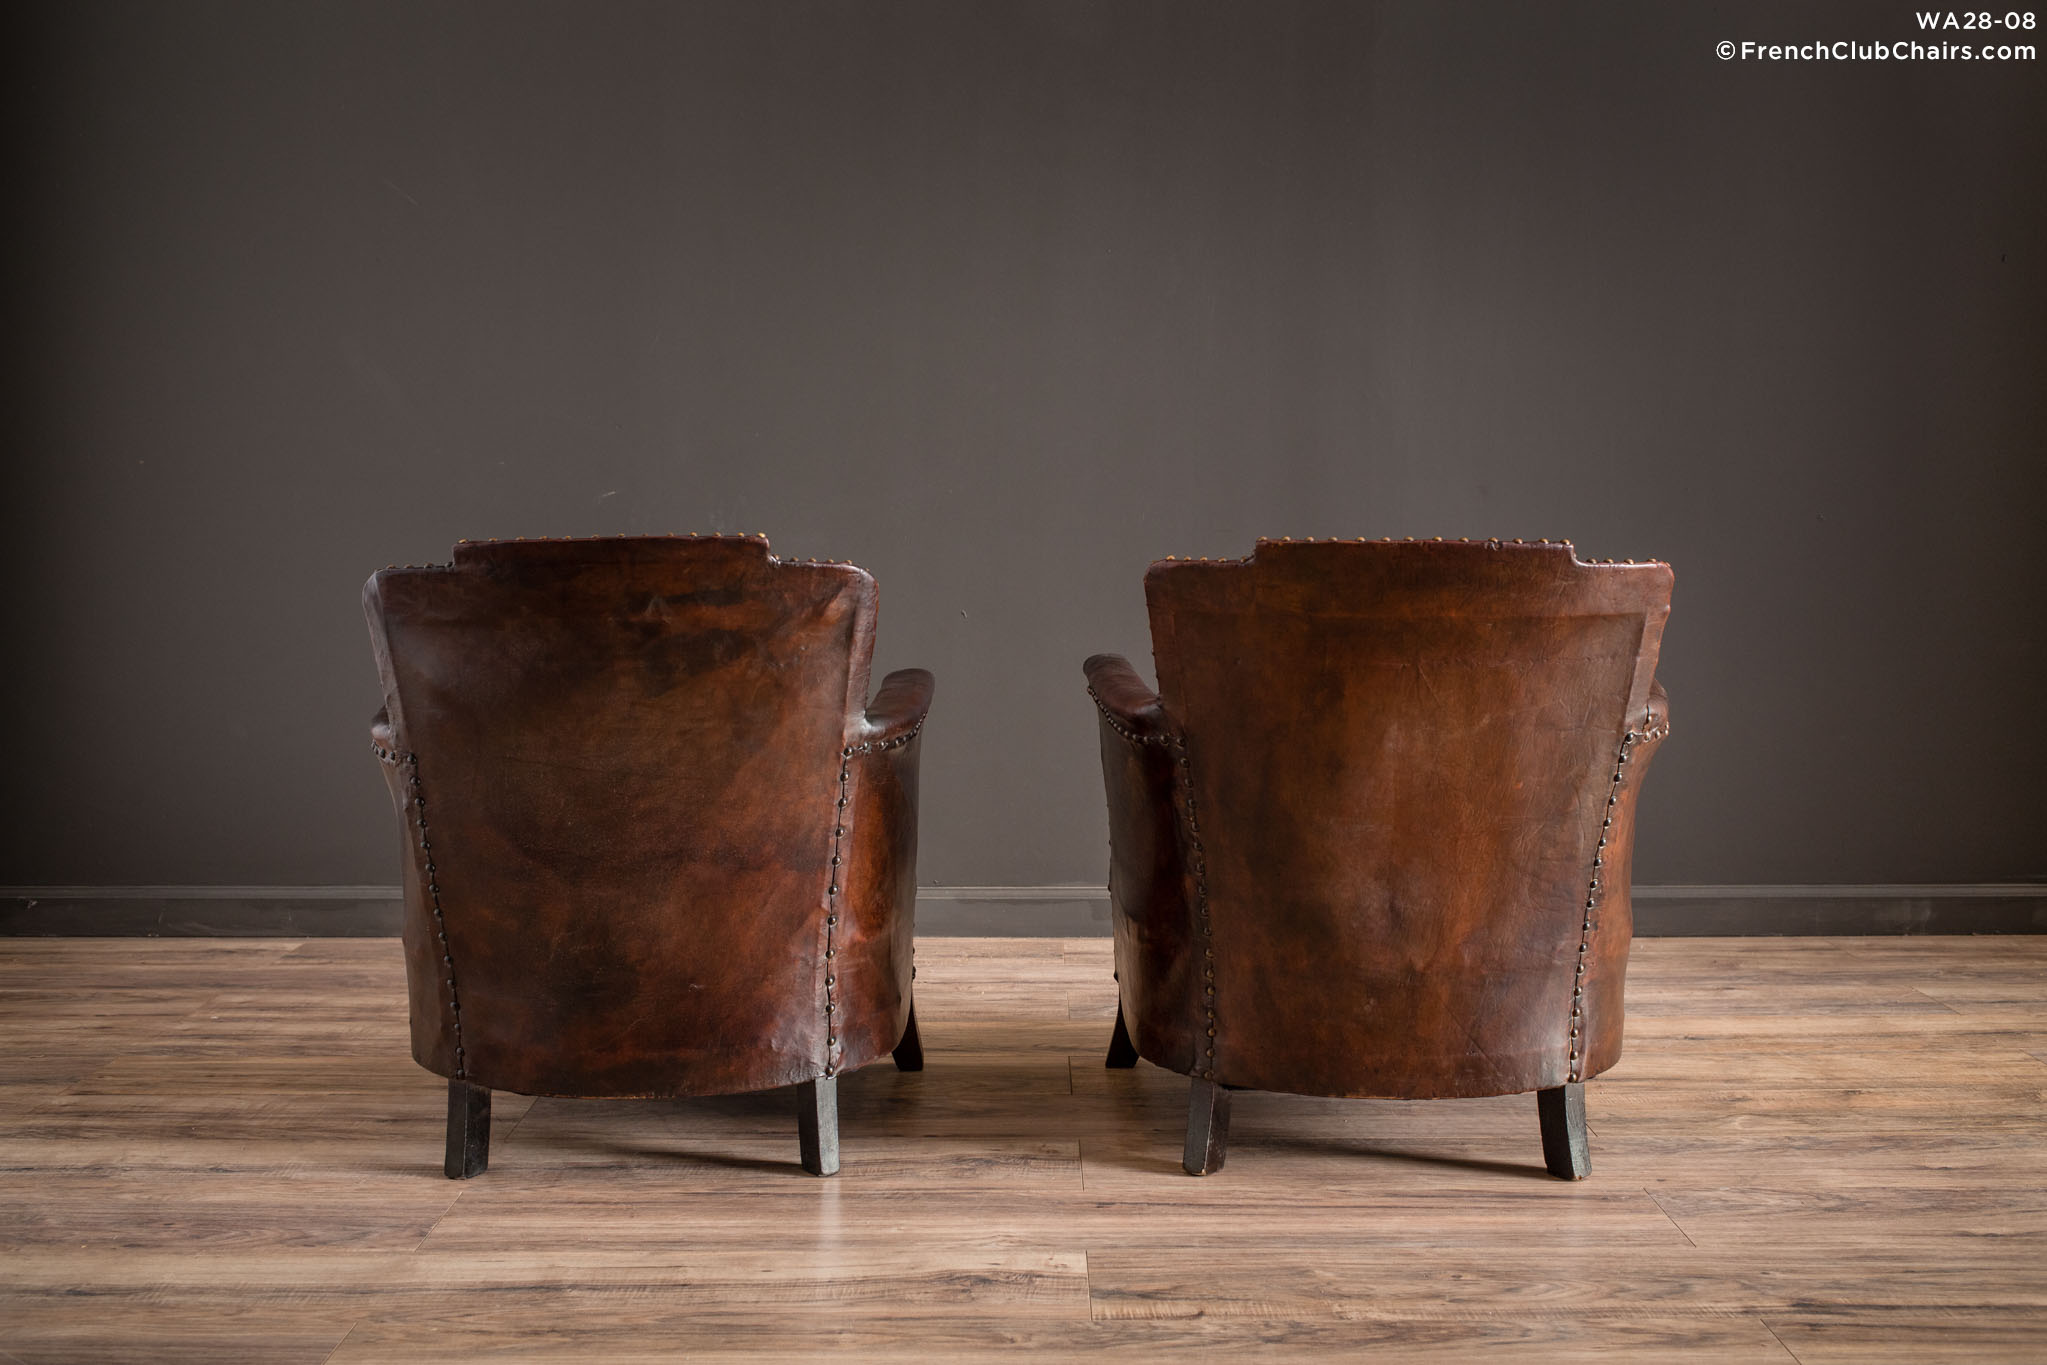 WA_28-08_Corbeilles_De_Vignoble_Pair_R_2BK1-williams-antiks-leather-french-club-chair-wa_fcccom